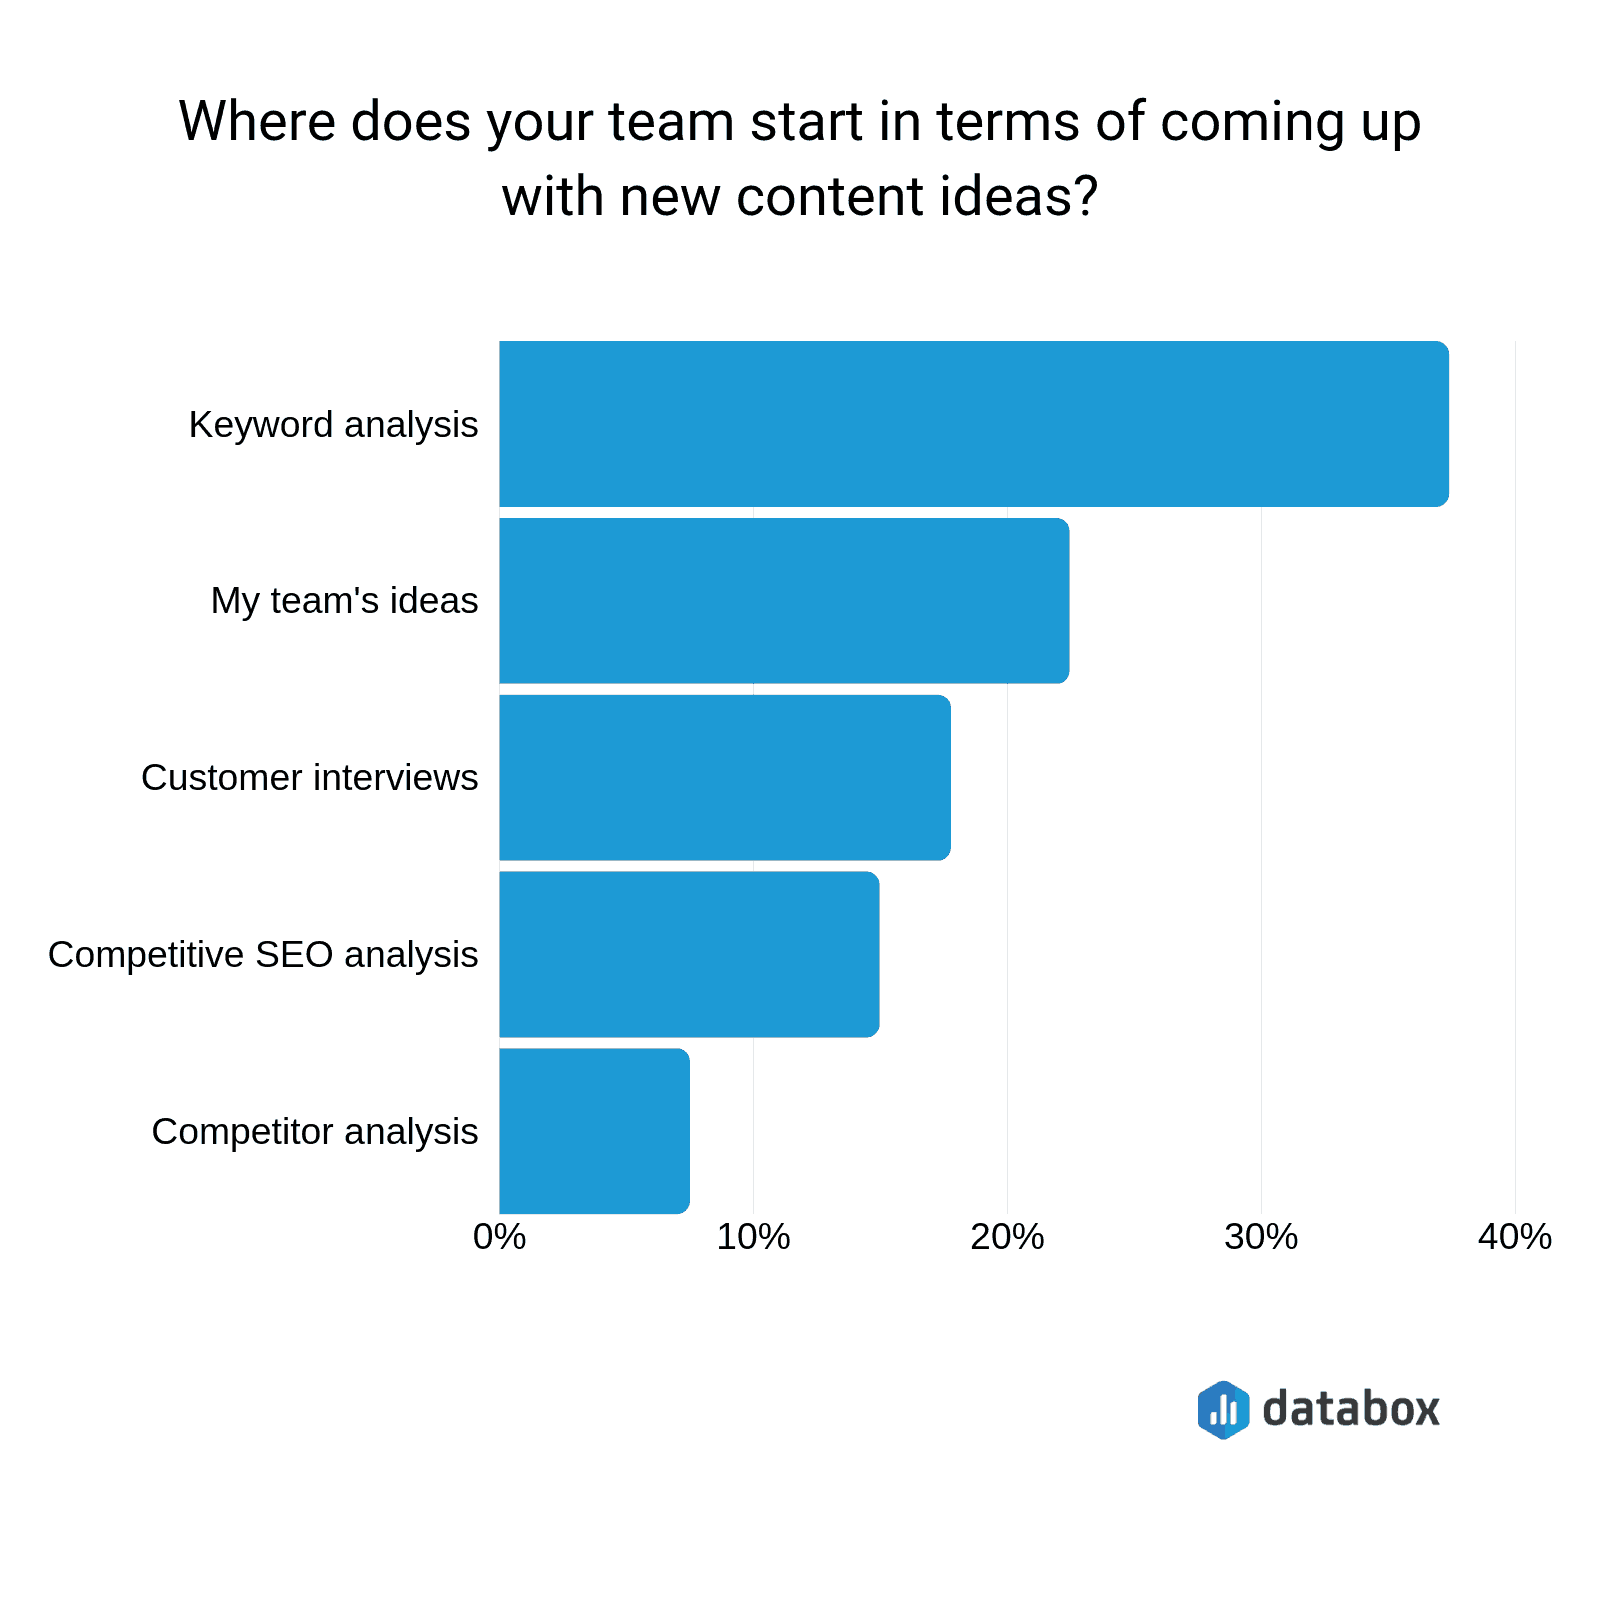 Where teams start to come up with new content ideas